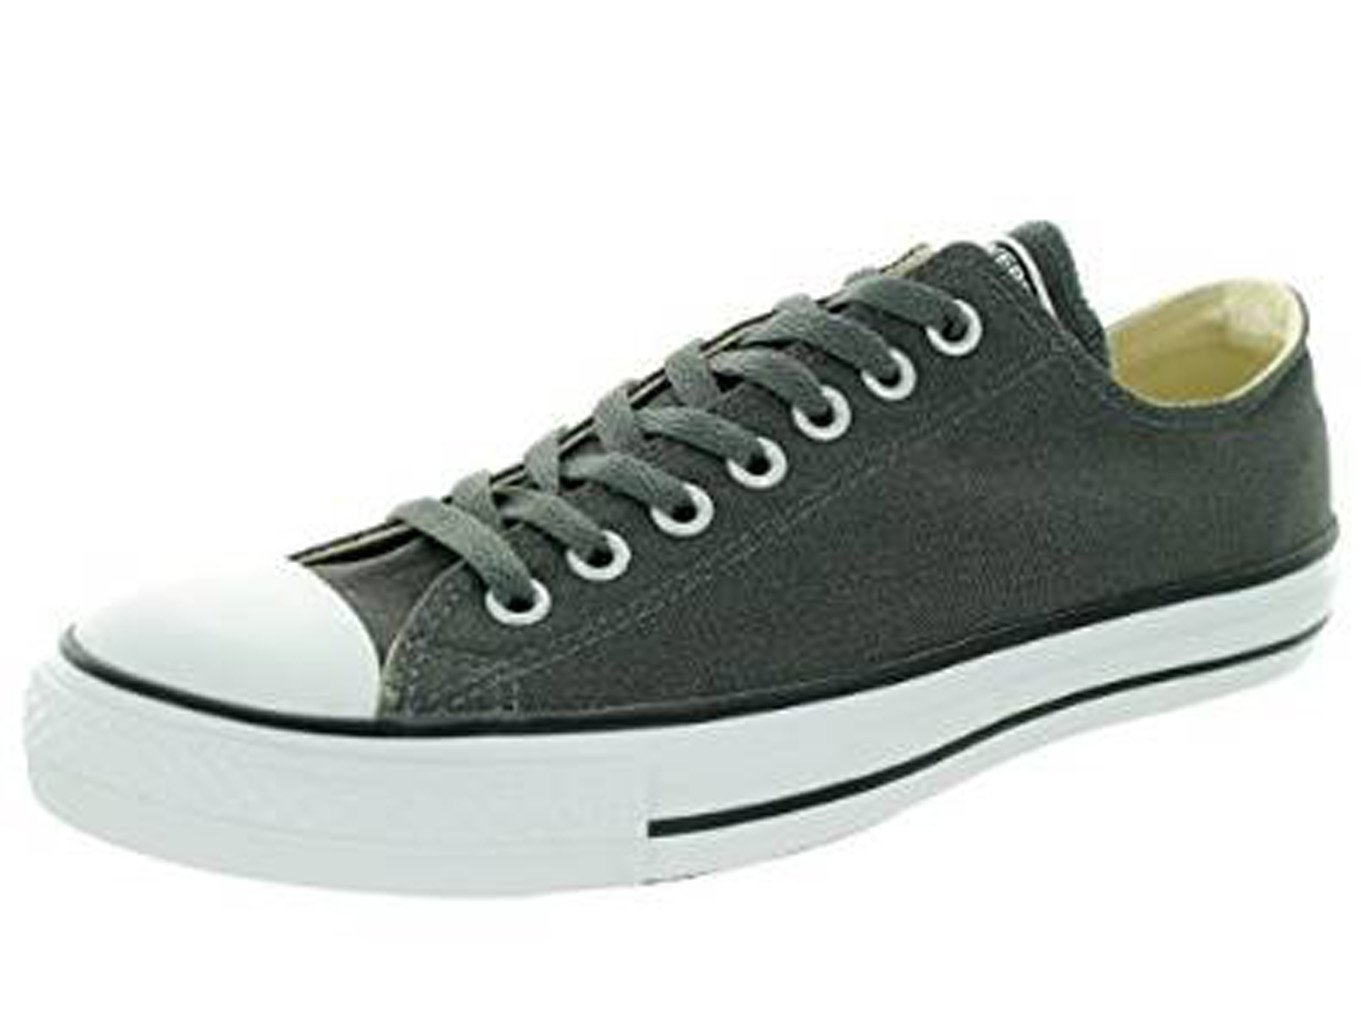 CONVERSE Designer Chucks STAR Schuhe - ALL STAR Chucks - Thunder/schwarz 242b49